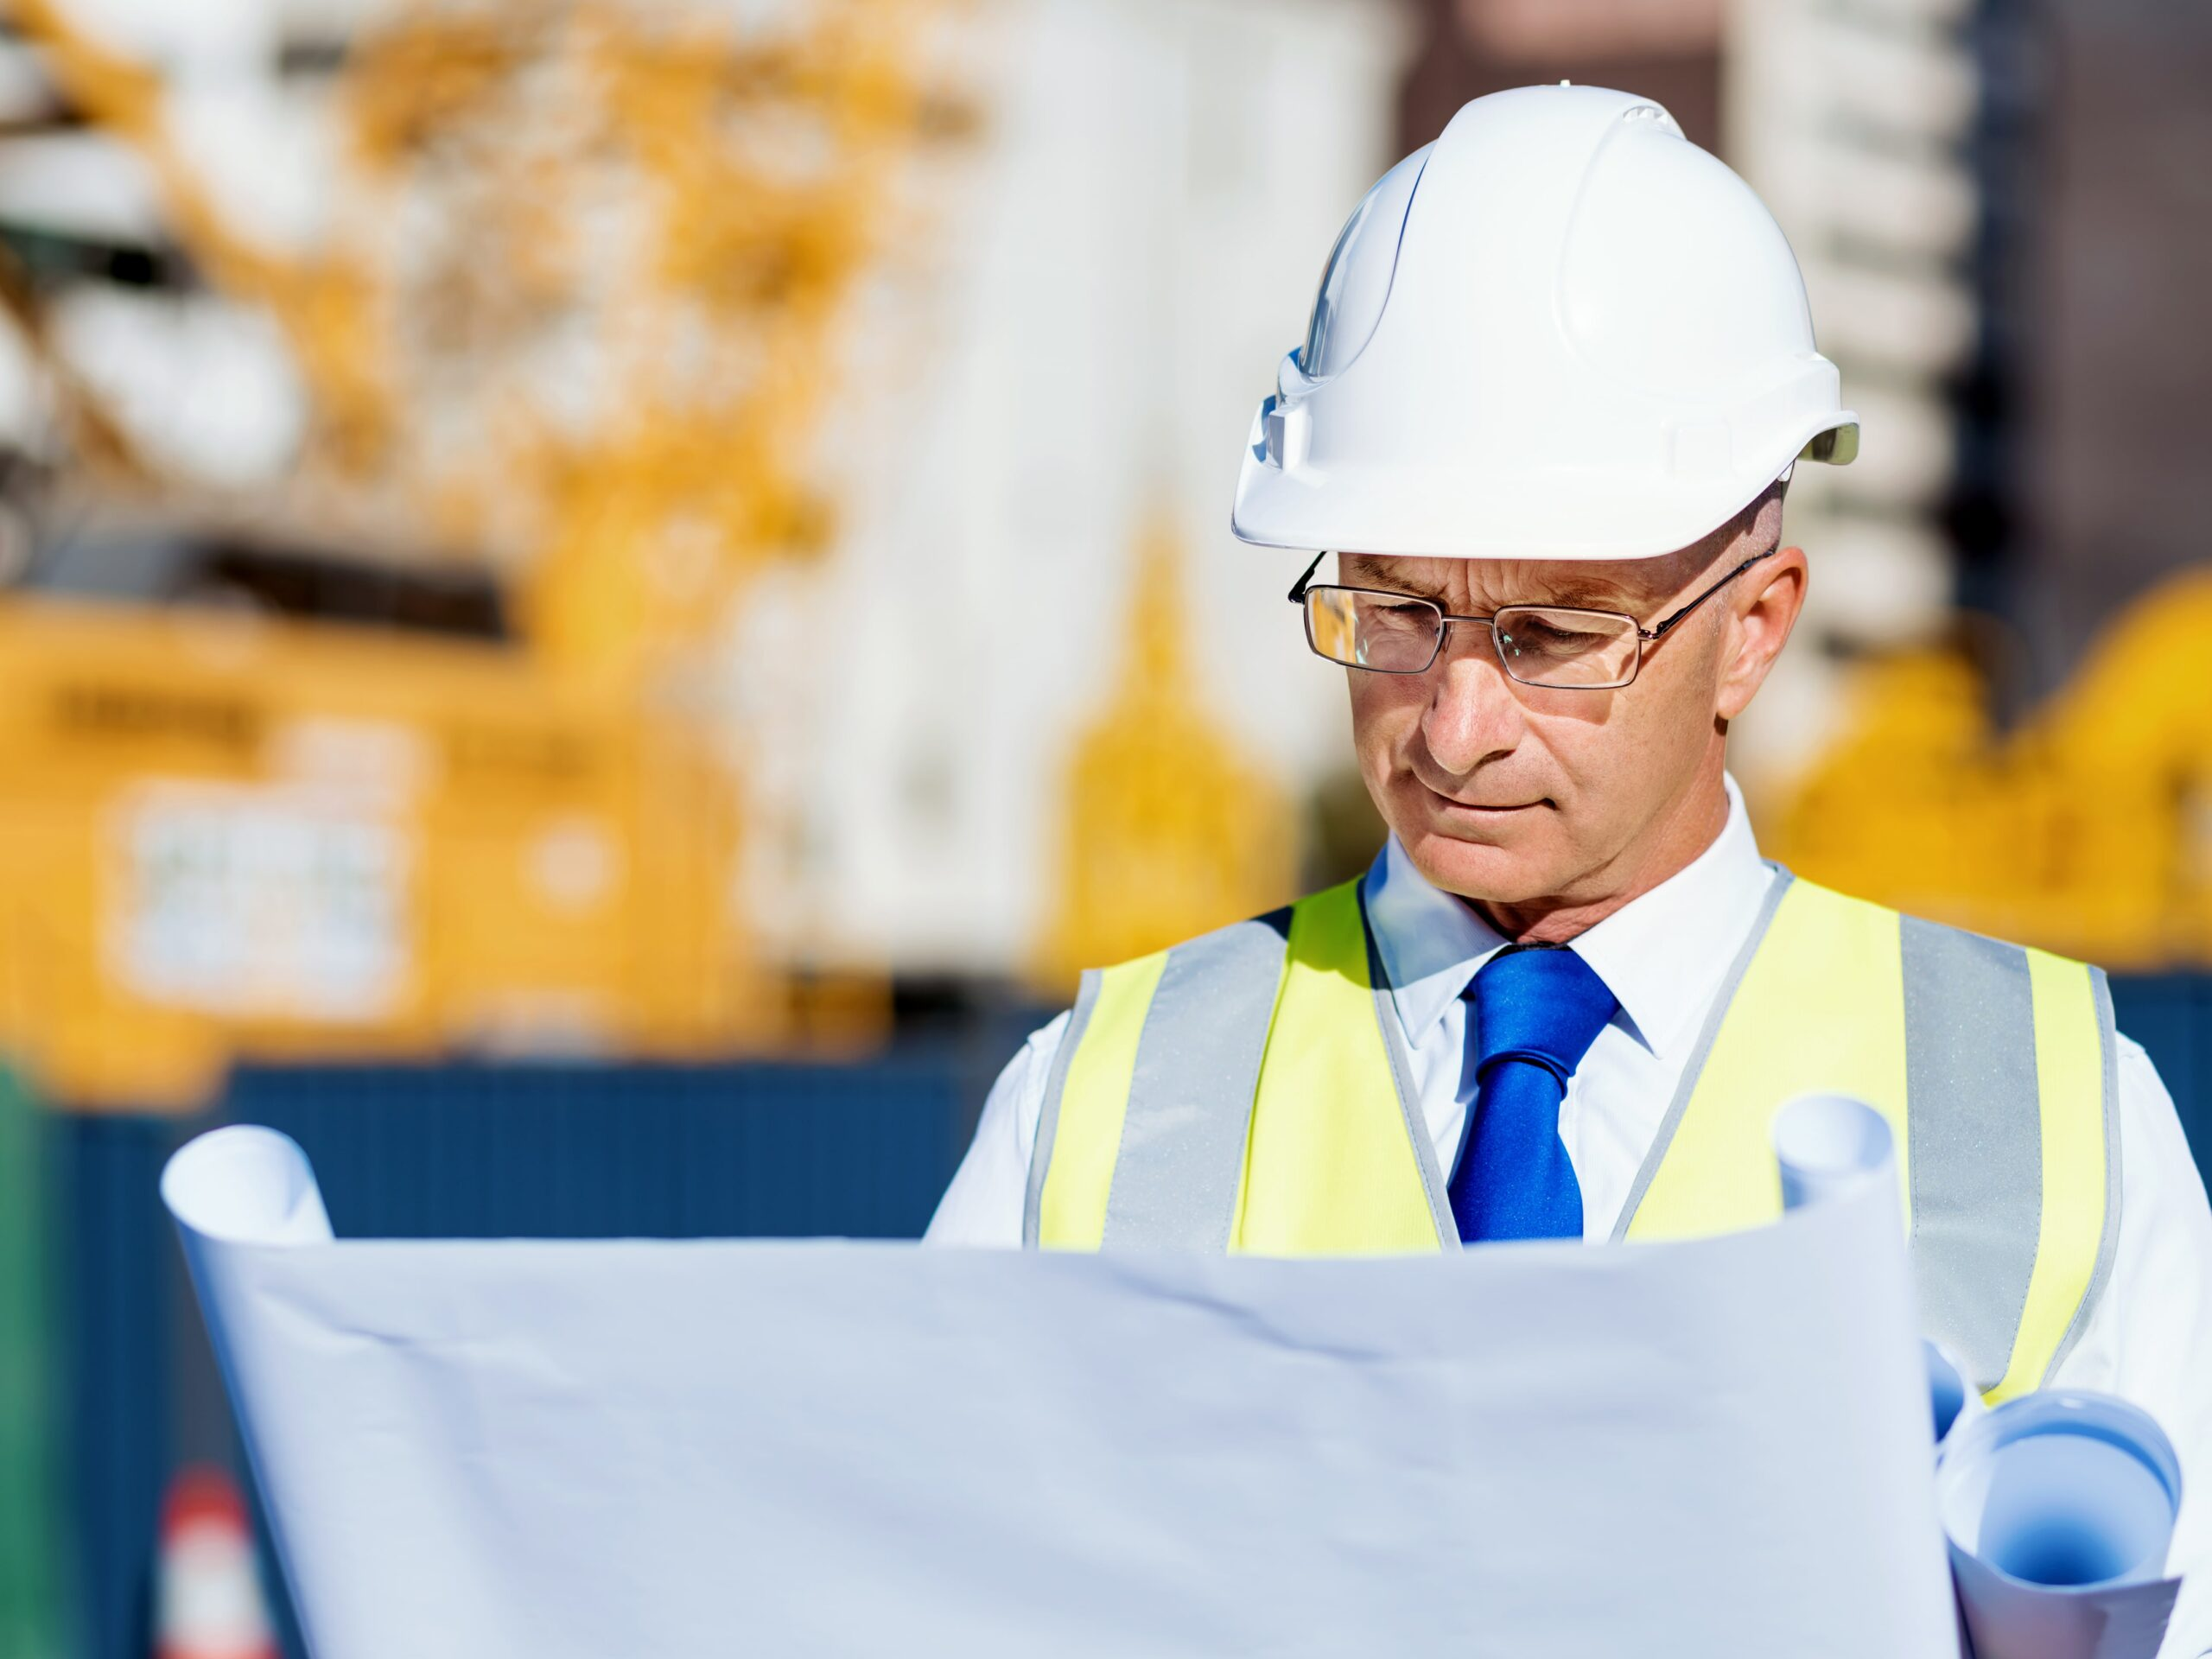 engineer builder at construction site p7xhj8c min